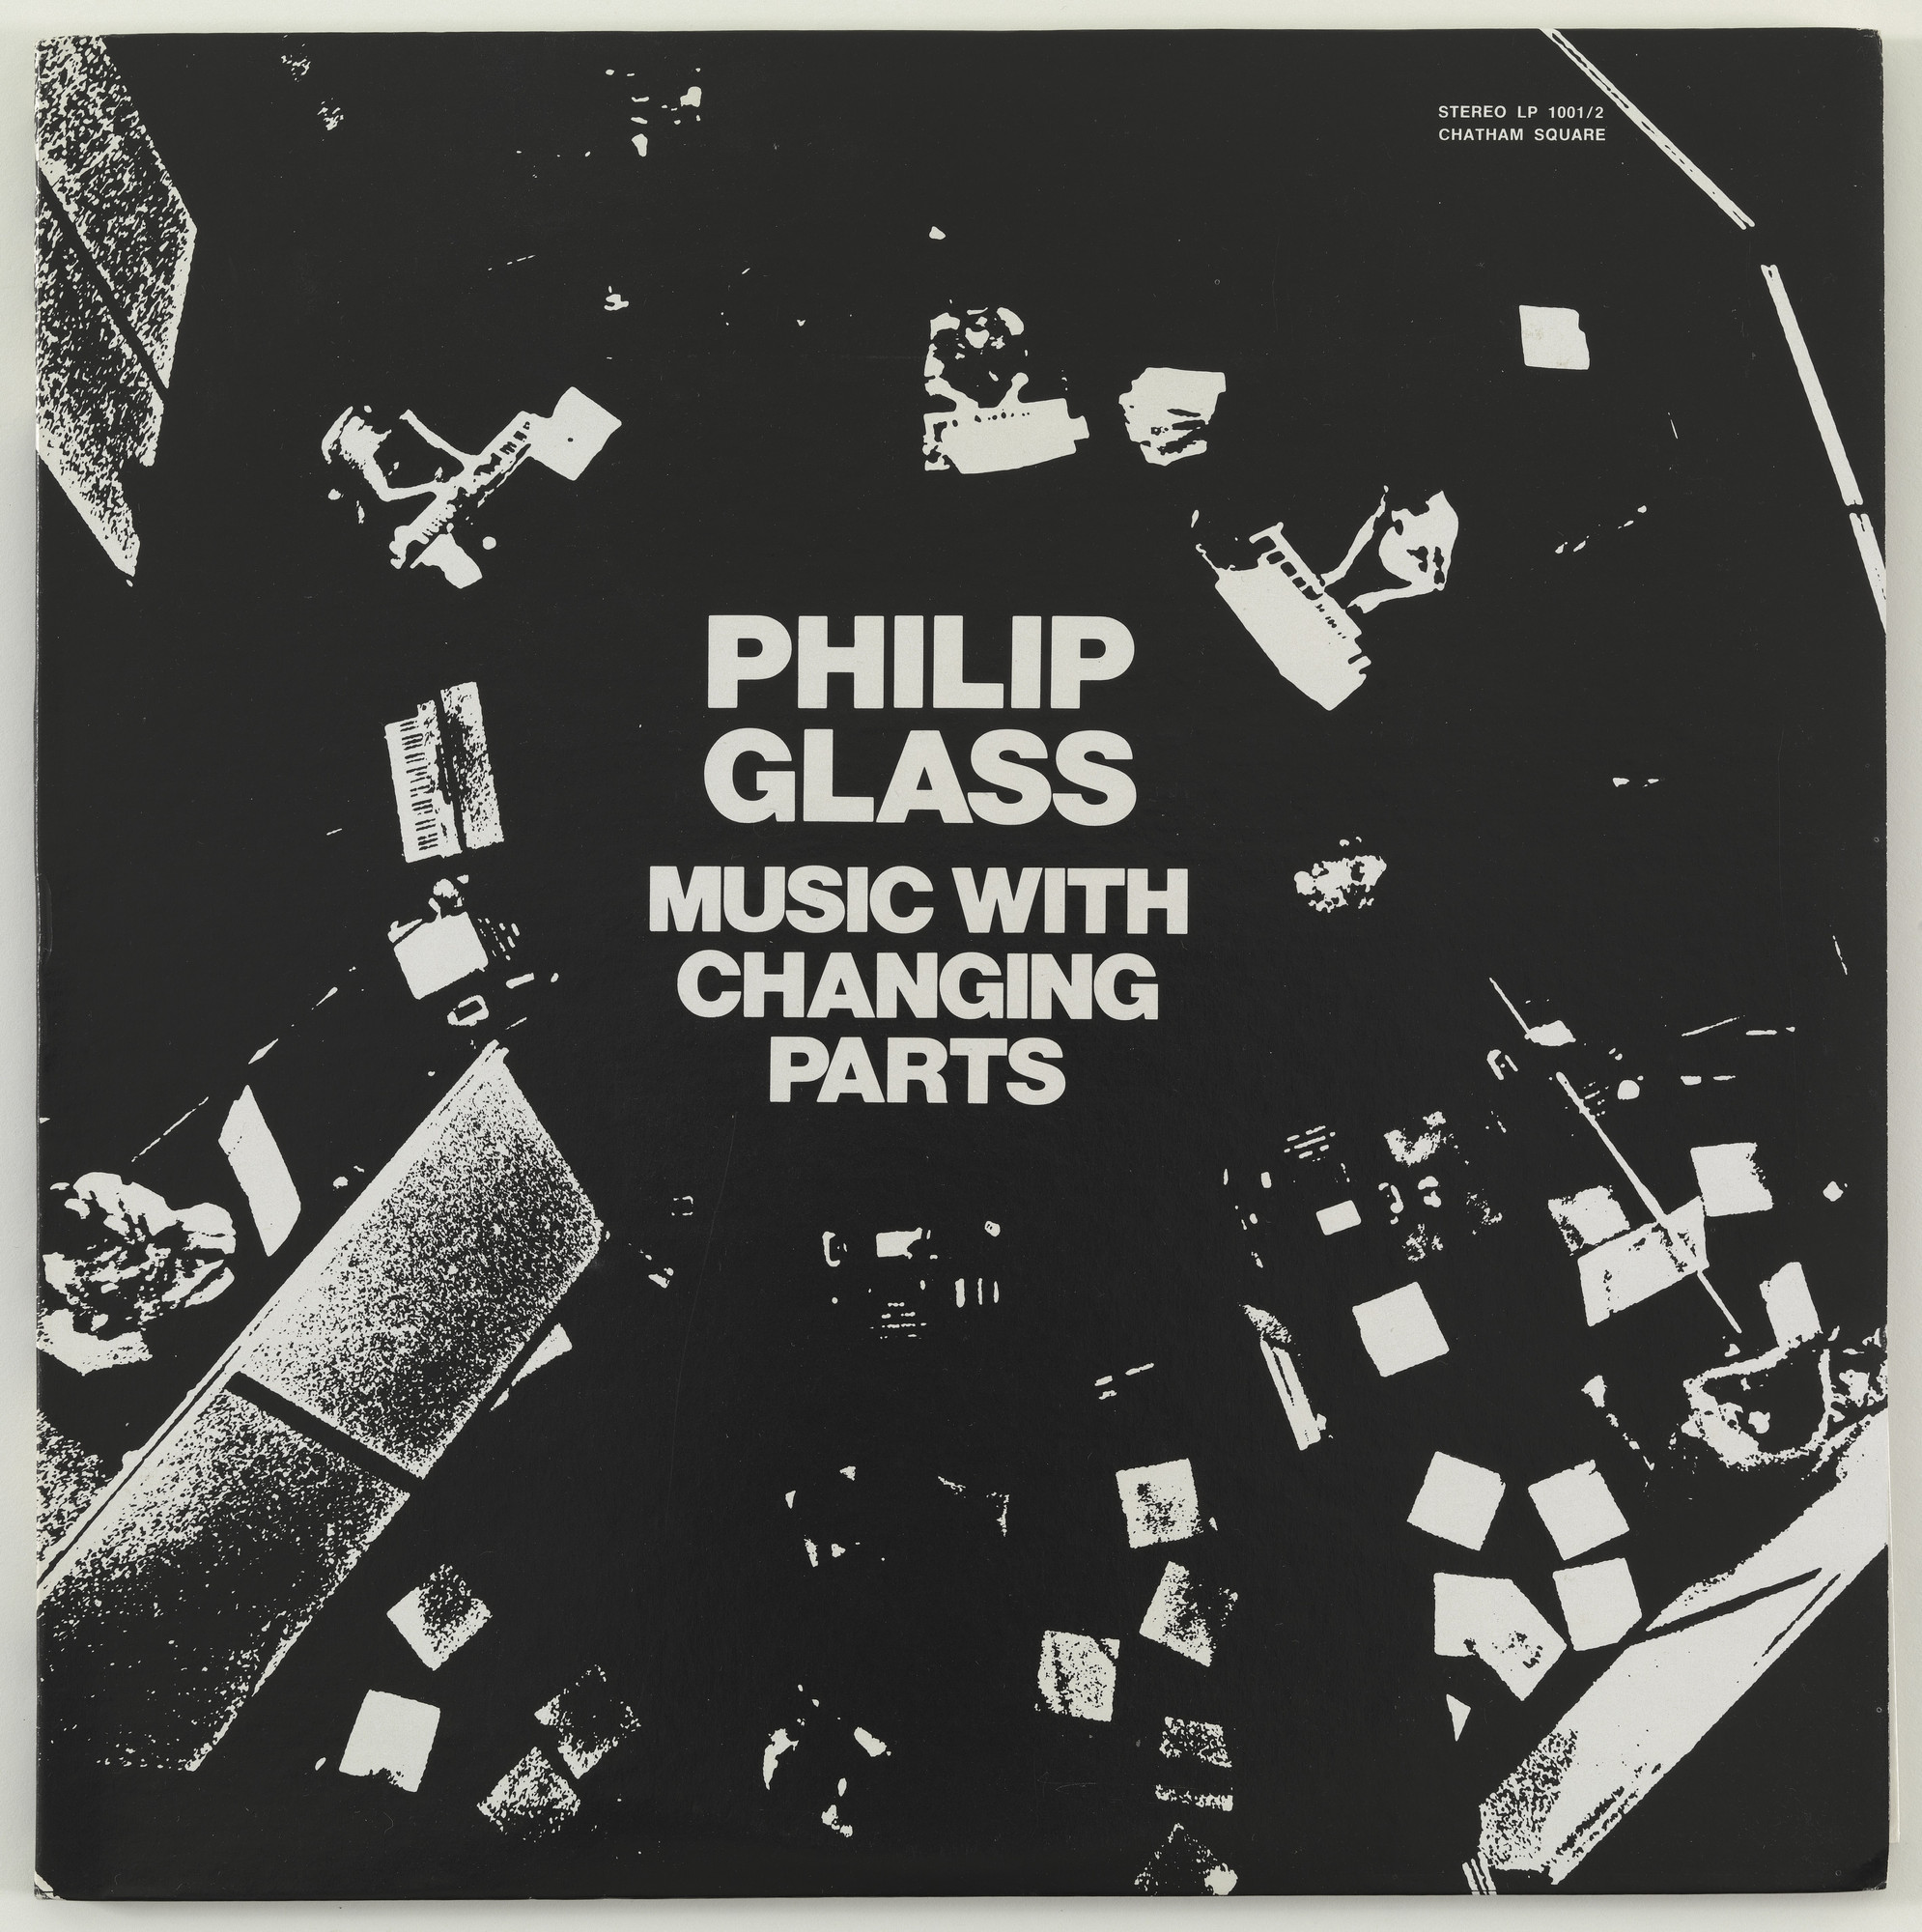 Philip Glass. Music with Changing Parts. 1971